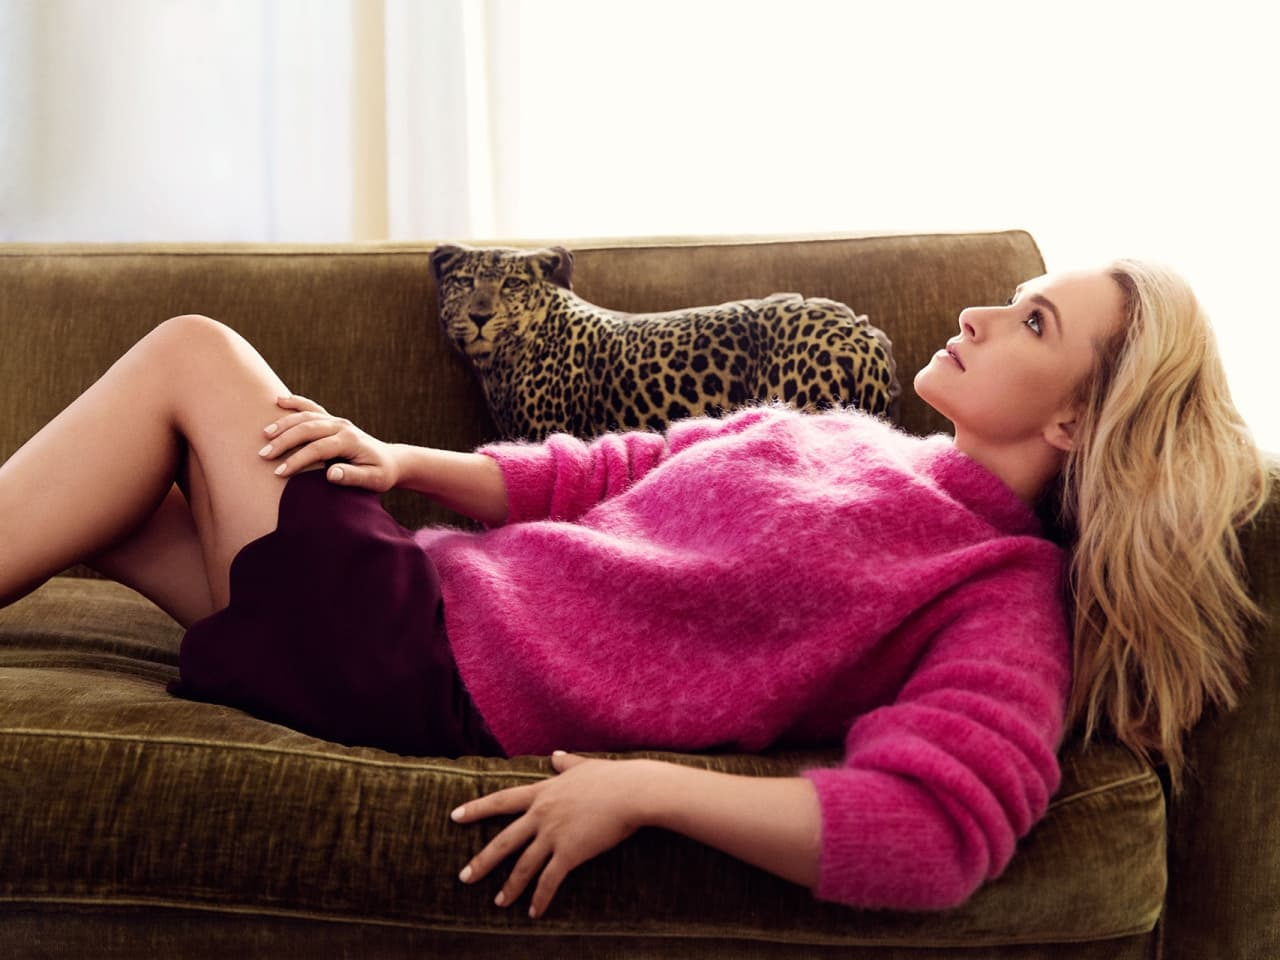 Wallpaper latest Hayden Panettiere On A Couch High Resolution